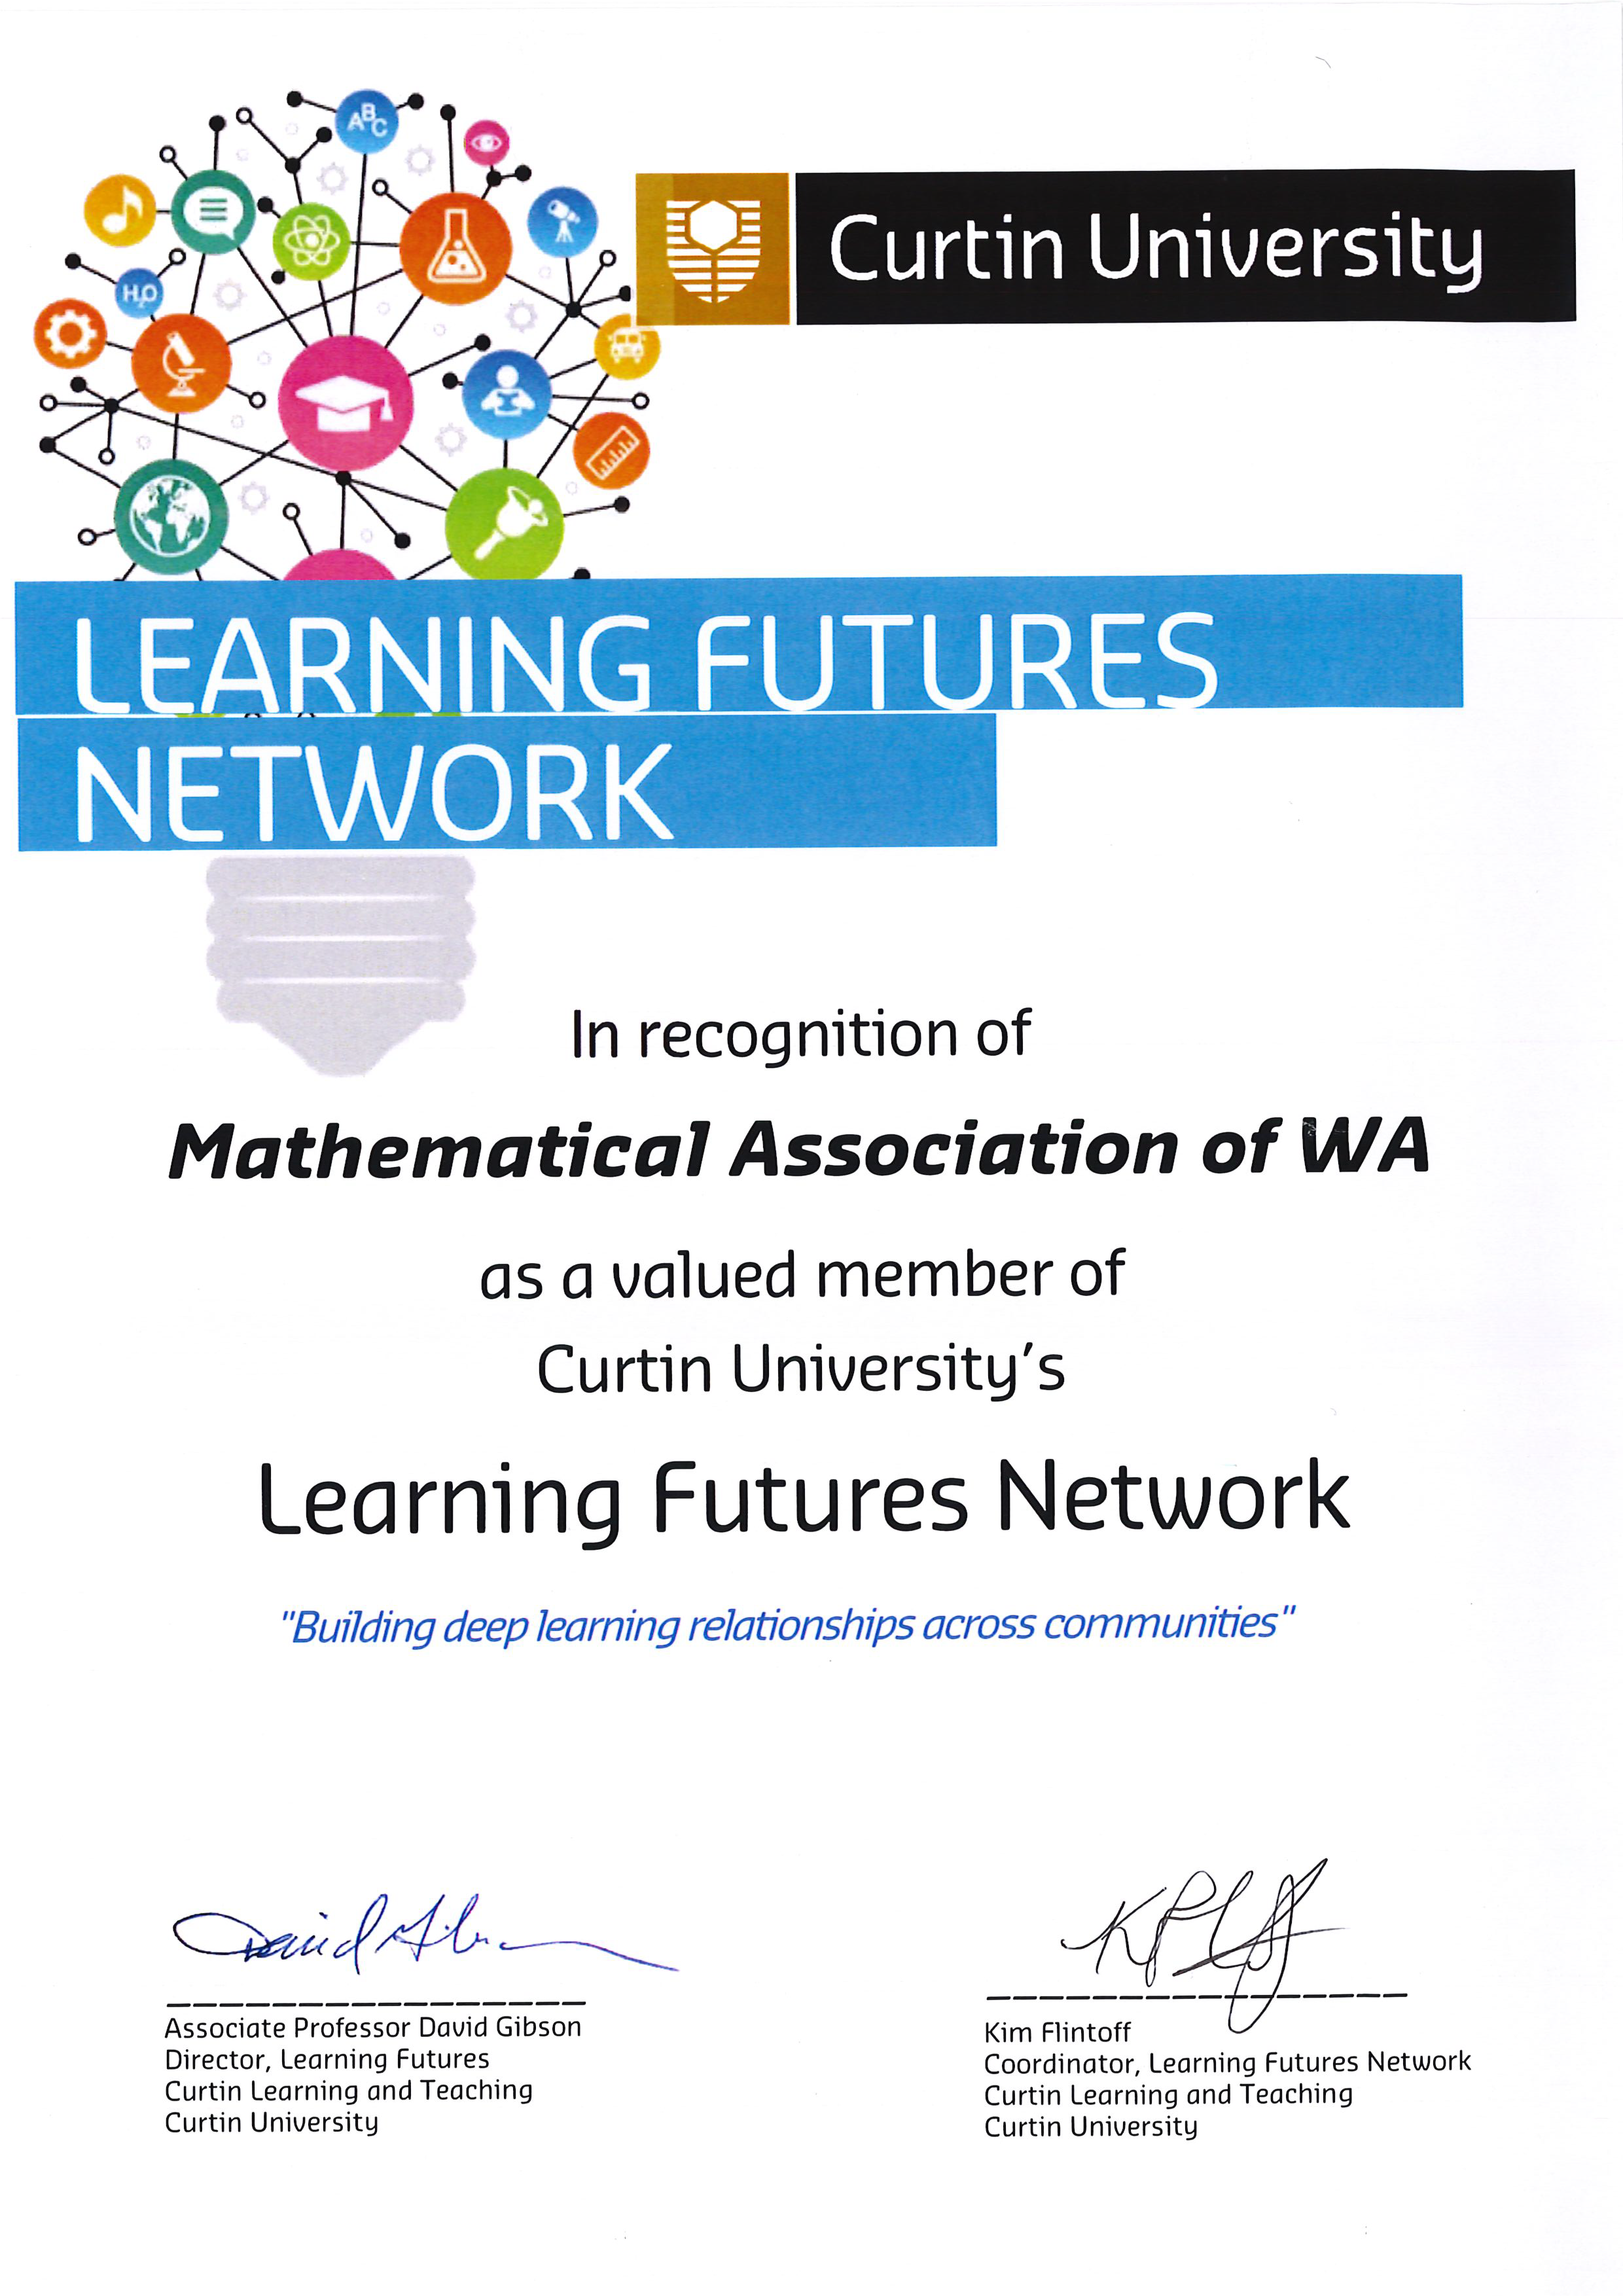 Curtin University Learning Futures Network